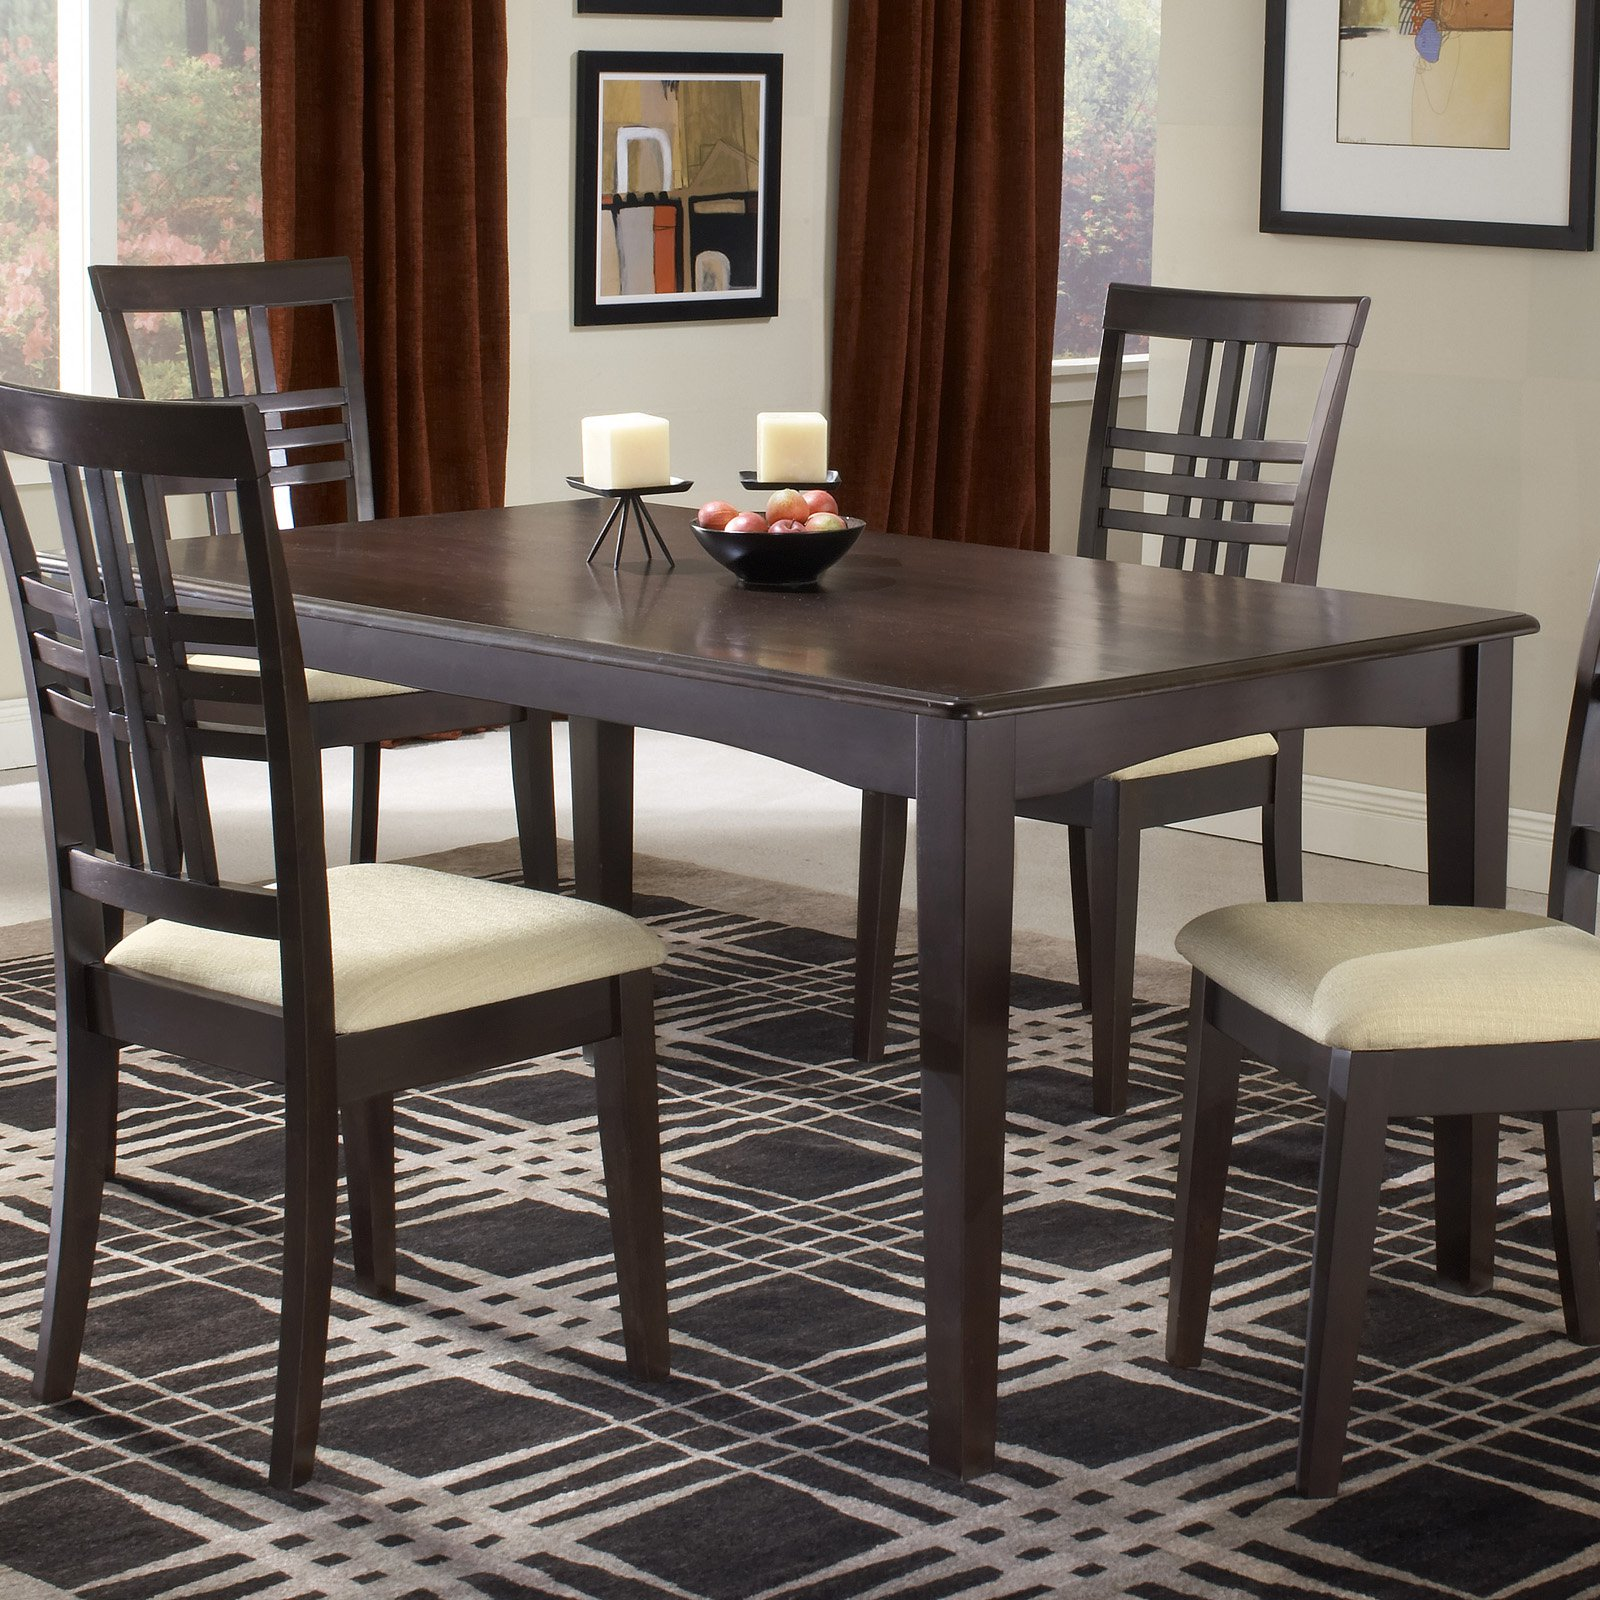 Hillsdale Tiburon Dining Table, Espresso by Hillsdale Furniture